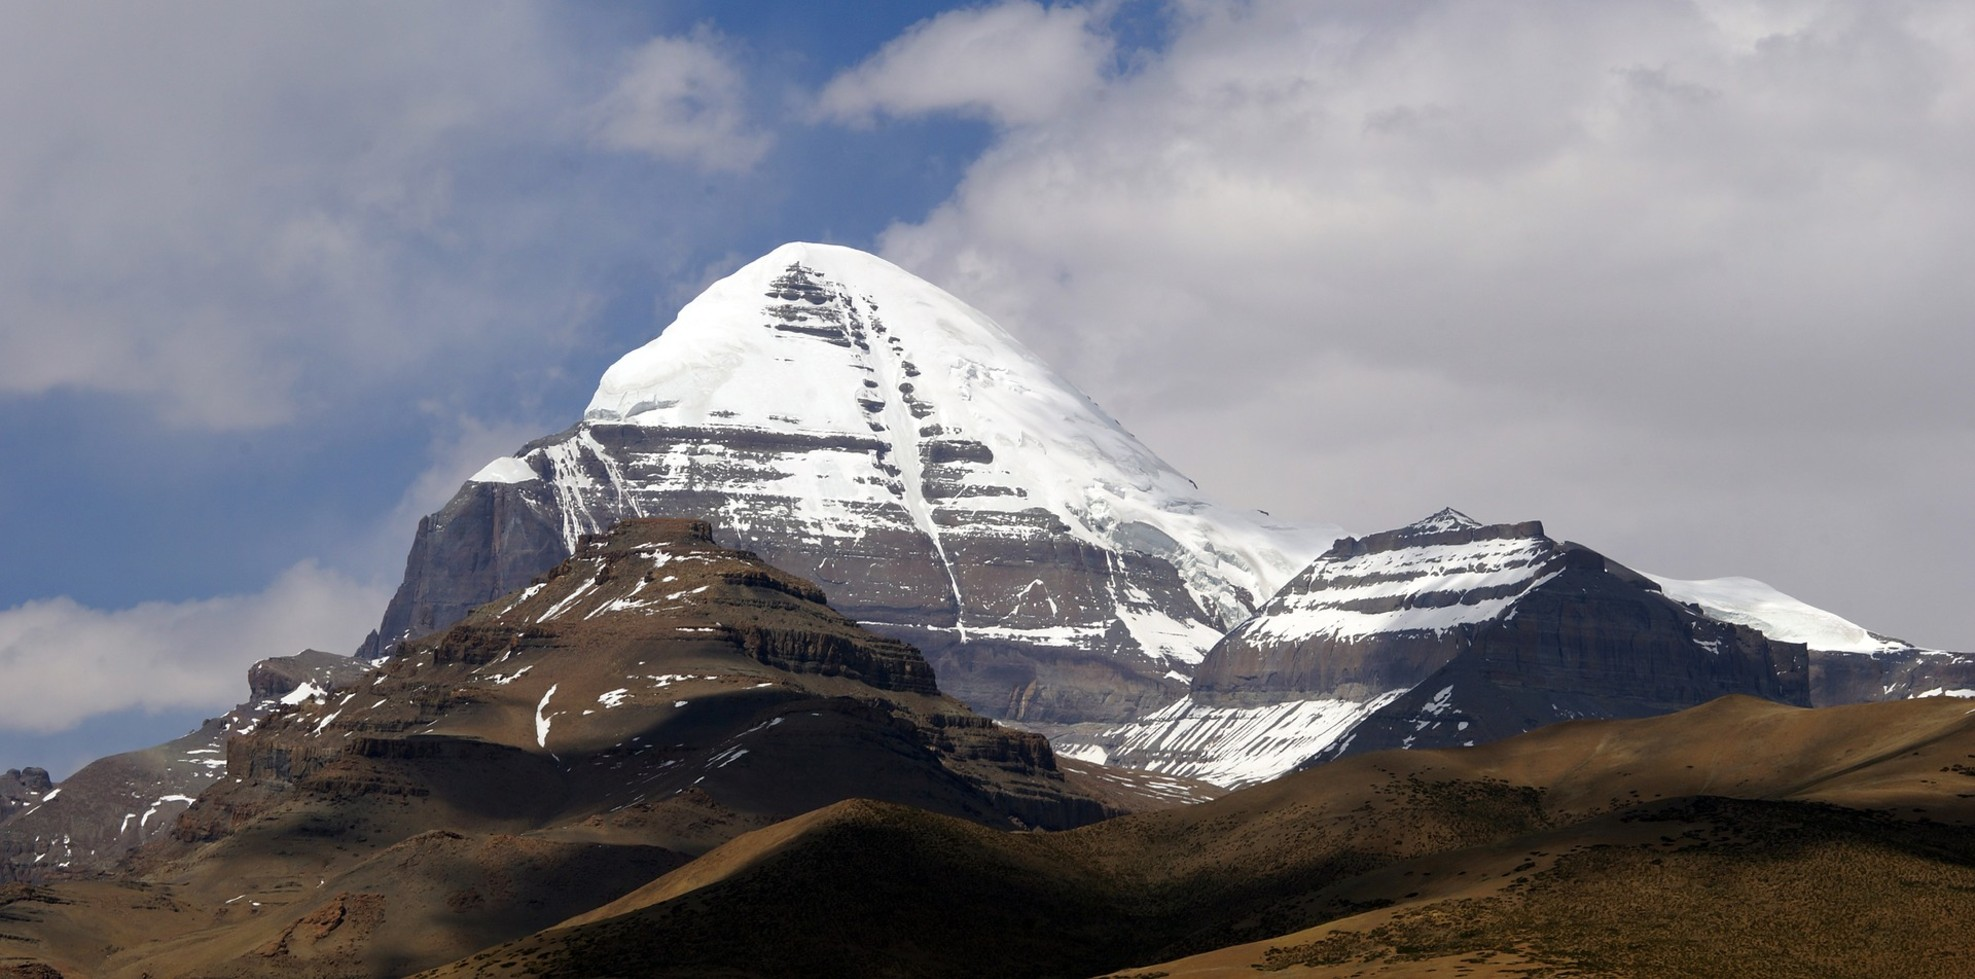 Kailash Mansarovar Tour via Kerung Border Crossing